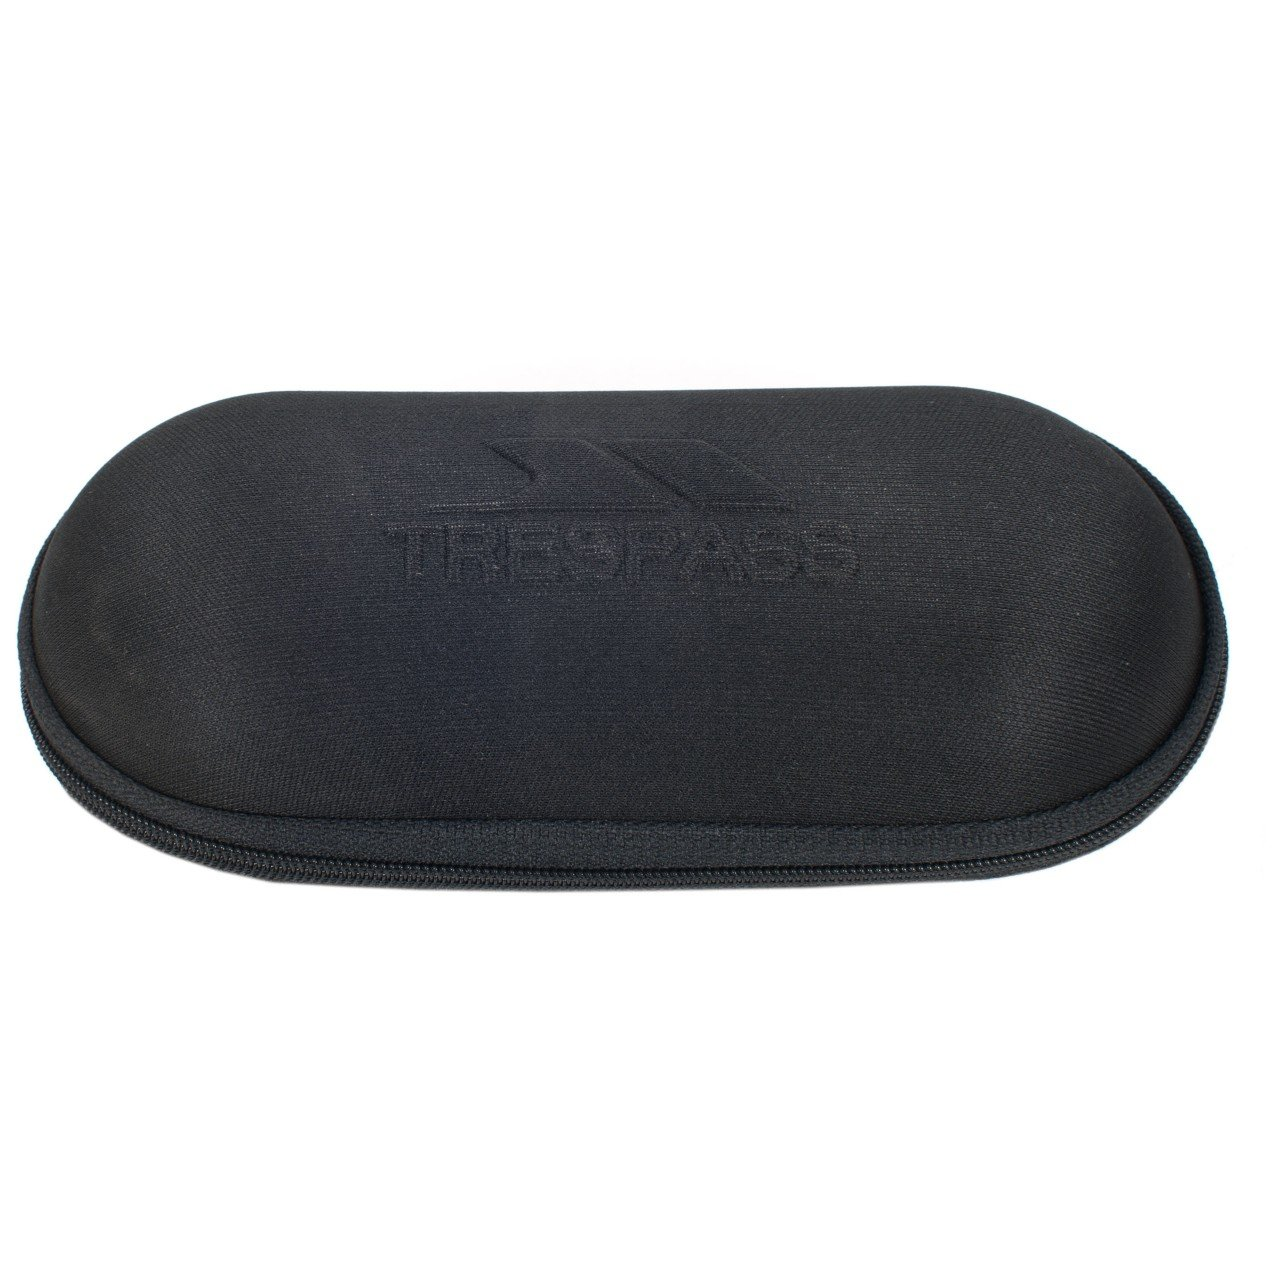 Trespass Egoistic Canvas Sunglasses Case UTTP519_1